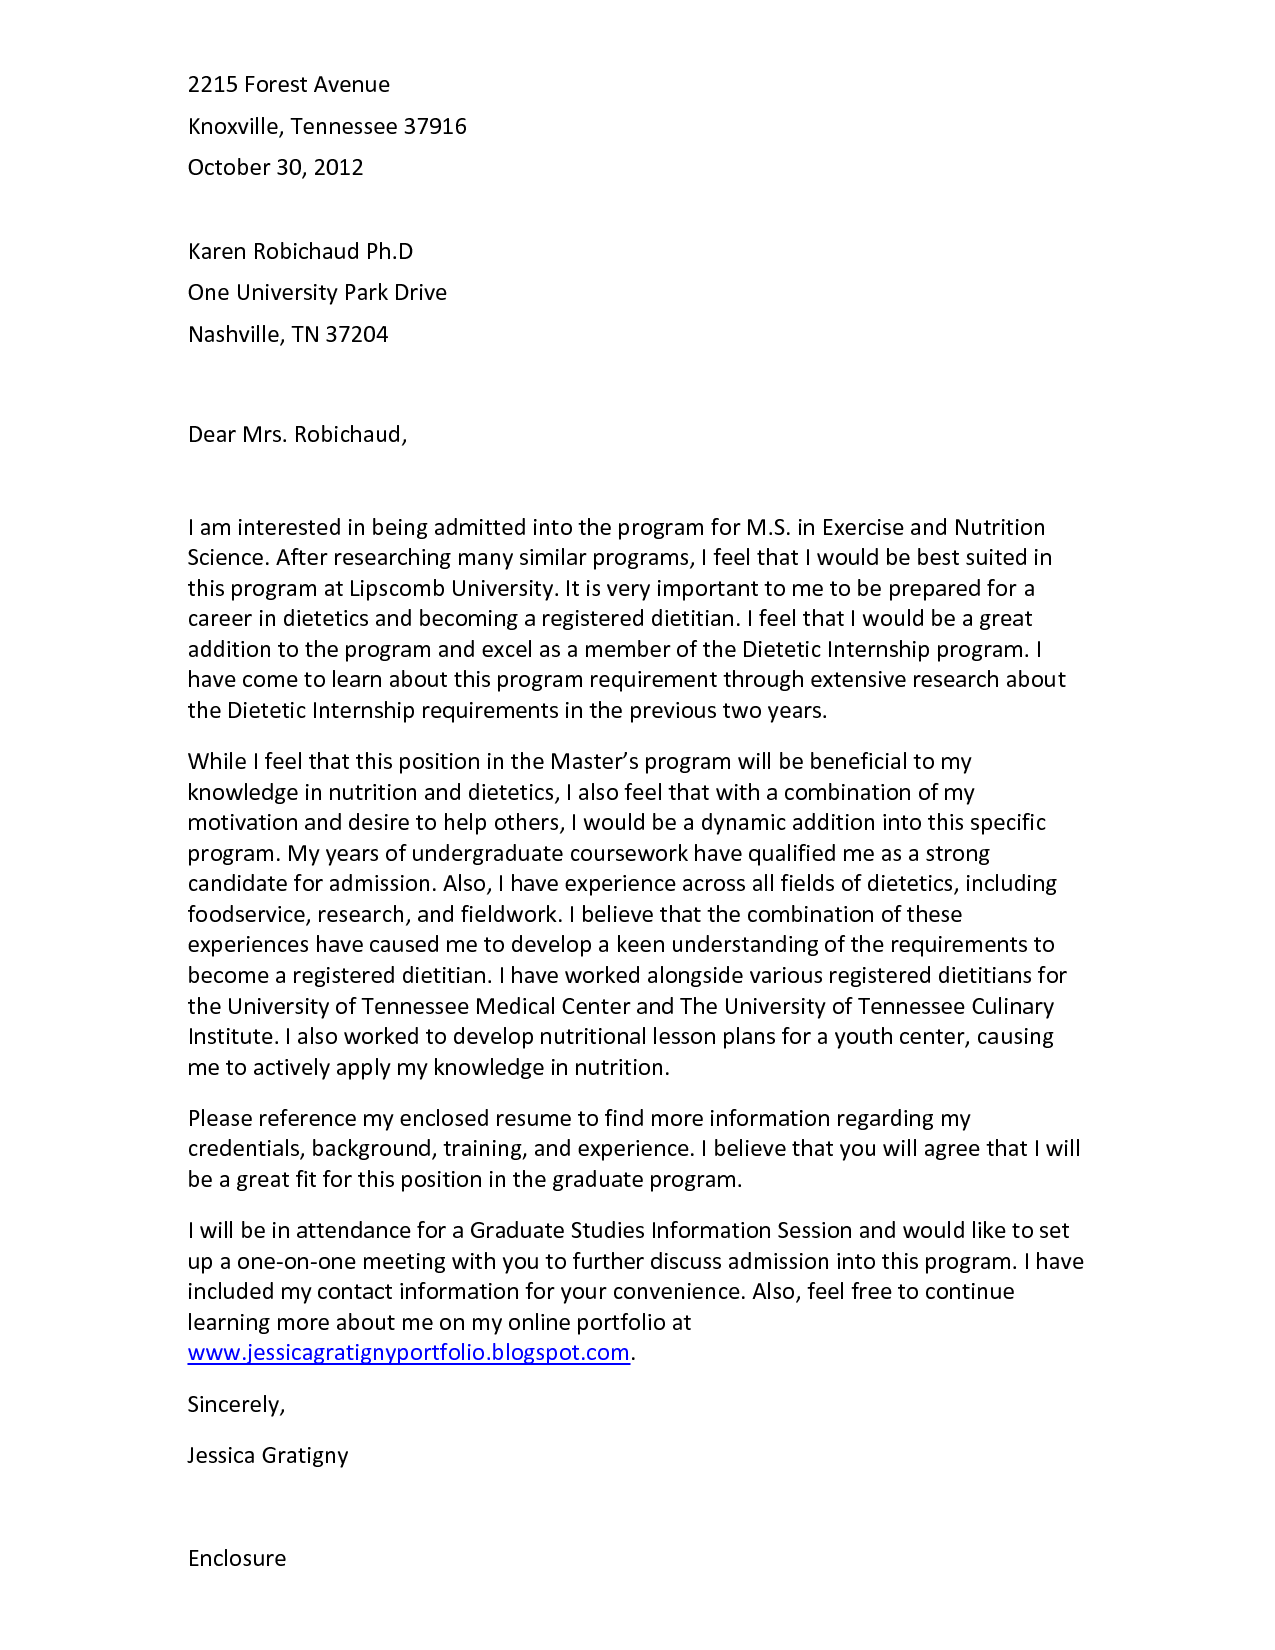 Motivation letter for university application master